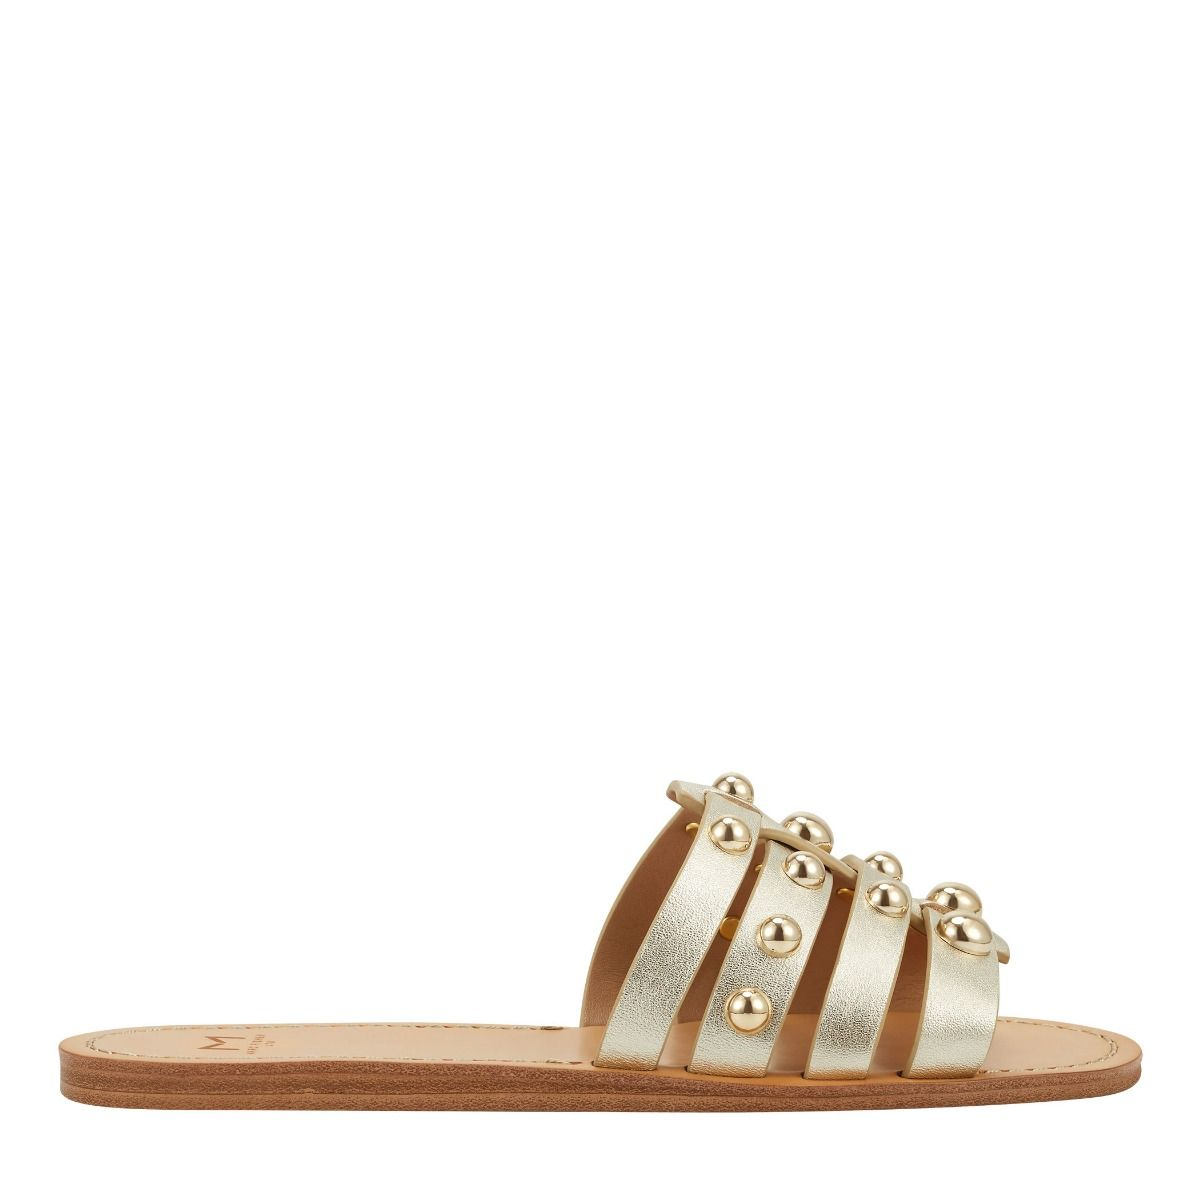 MARC FISHER LTD Pava Studded Flat Sandal Pava Studded Flat Sandal